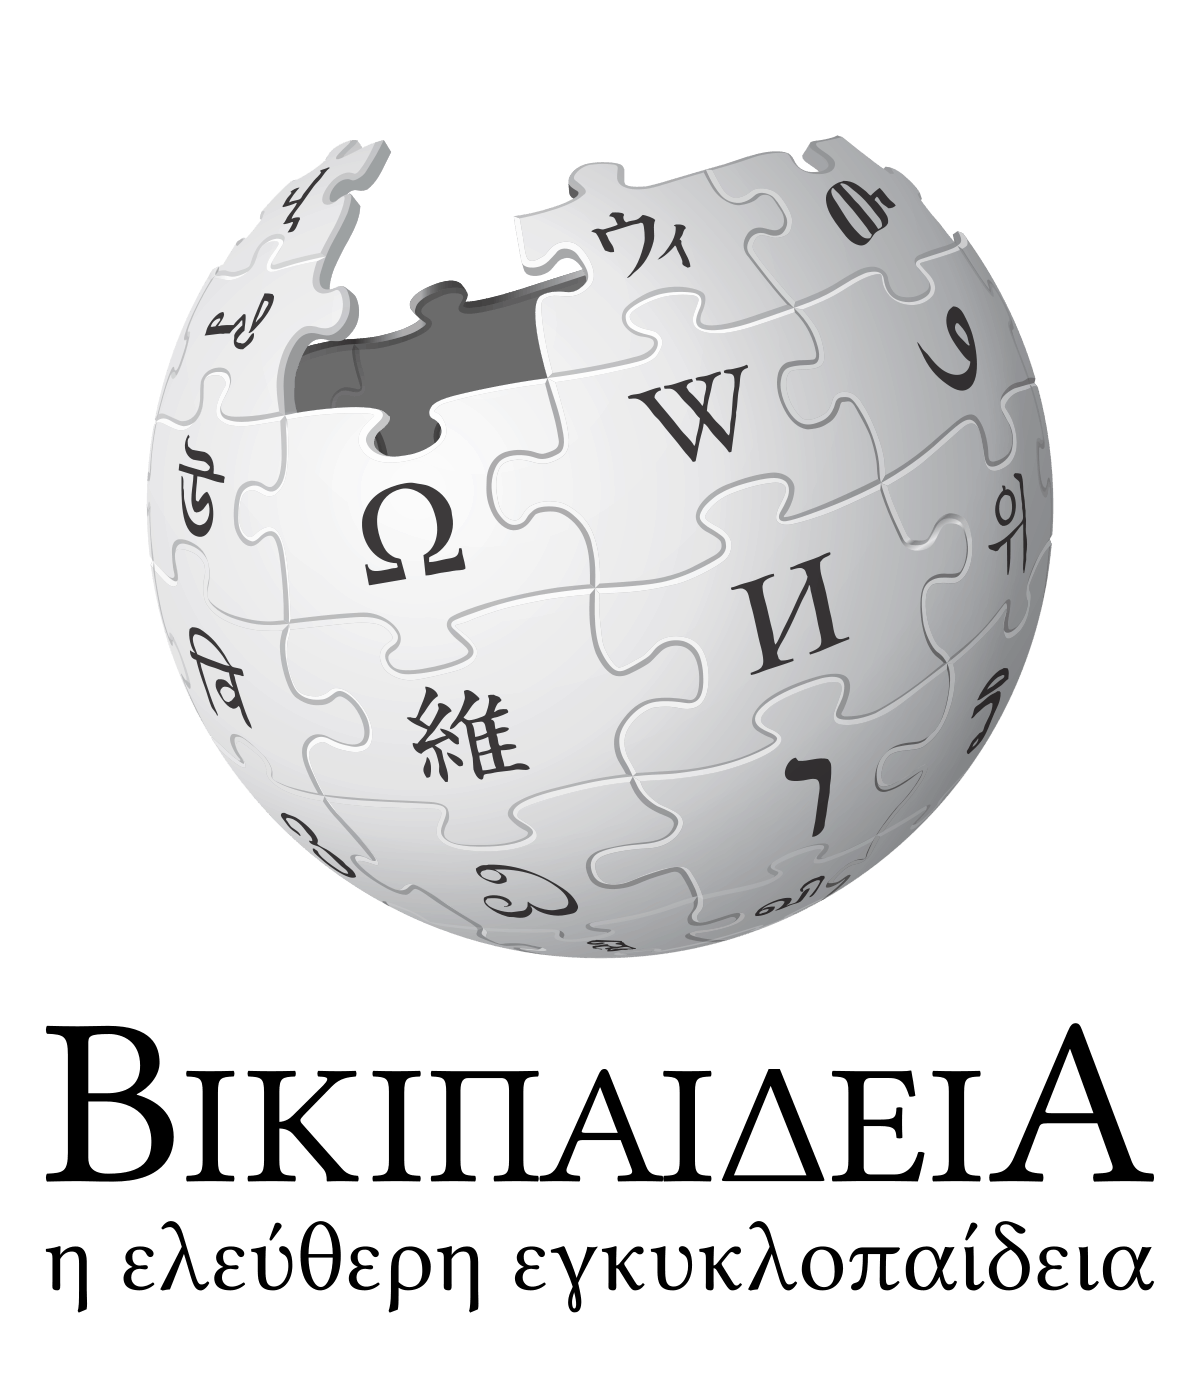 The leading Greek Wikipedia entries for 2018 2